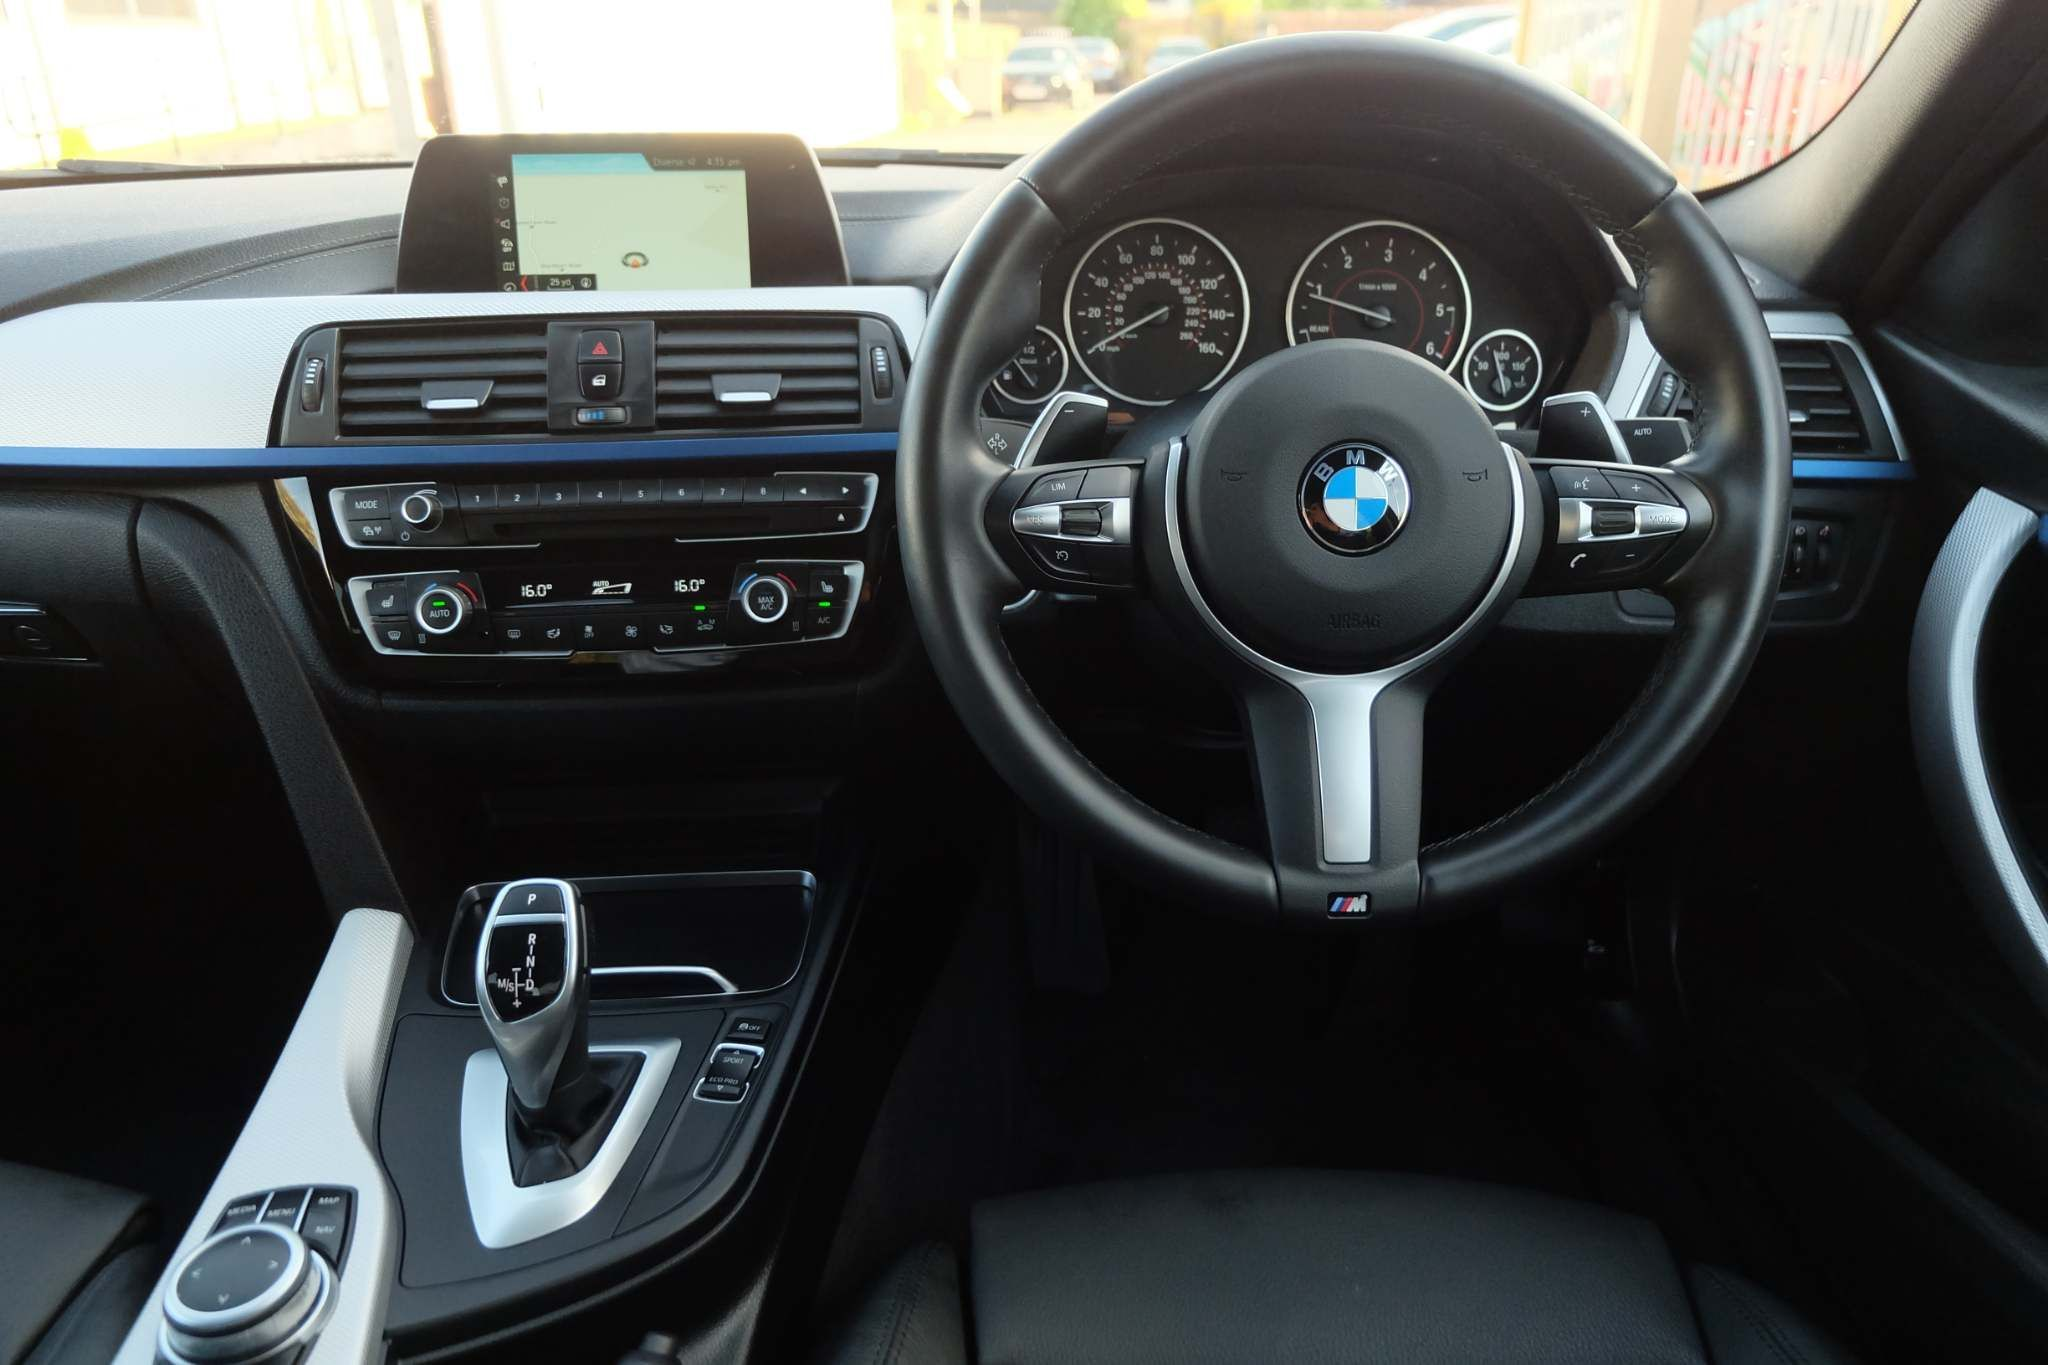 Used BMW 3 Series 2.0 320d Blueperformance M Sport Auto (s/s) 4dr